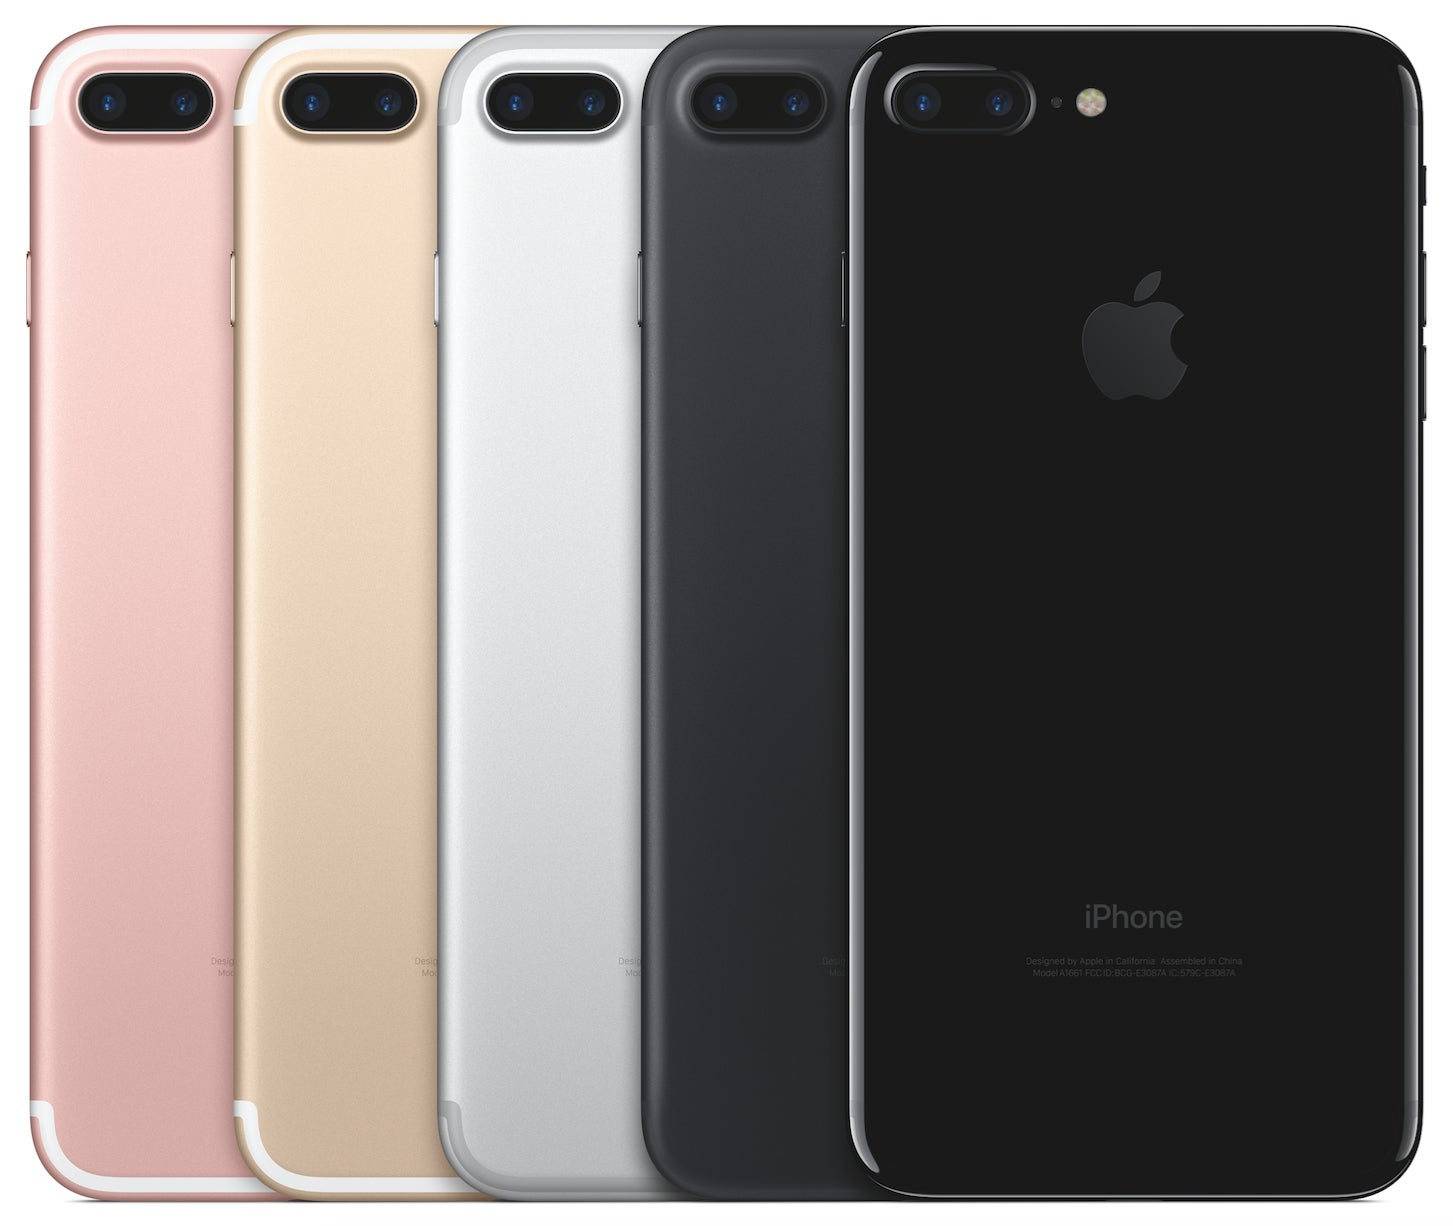 Iphone 7 And 7 Plus Faq Everything You Need To Know About Apples